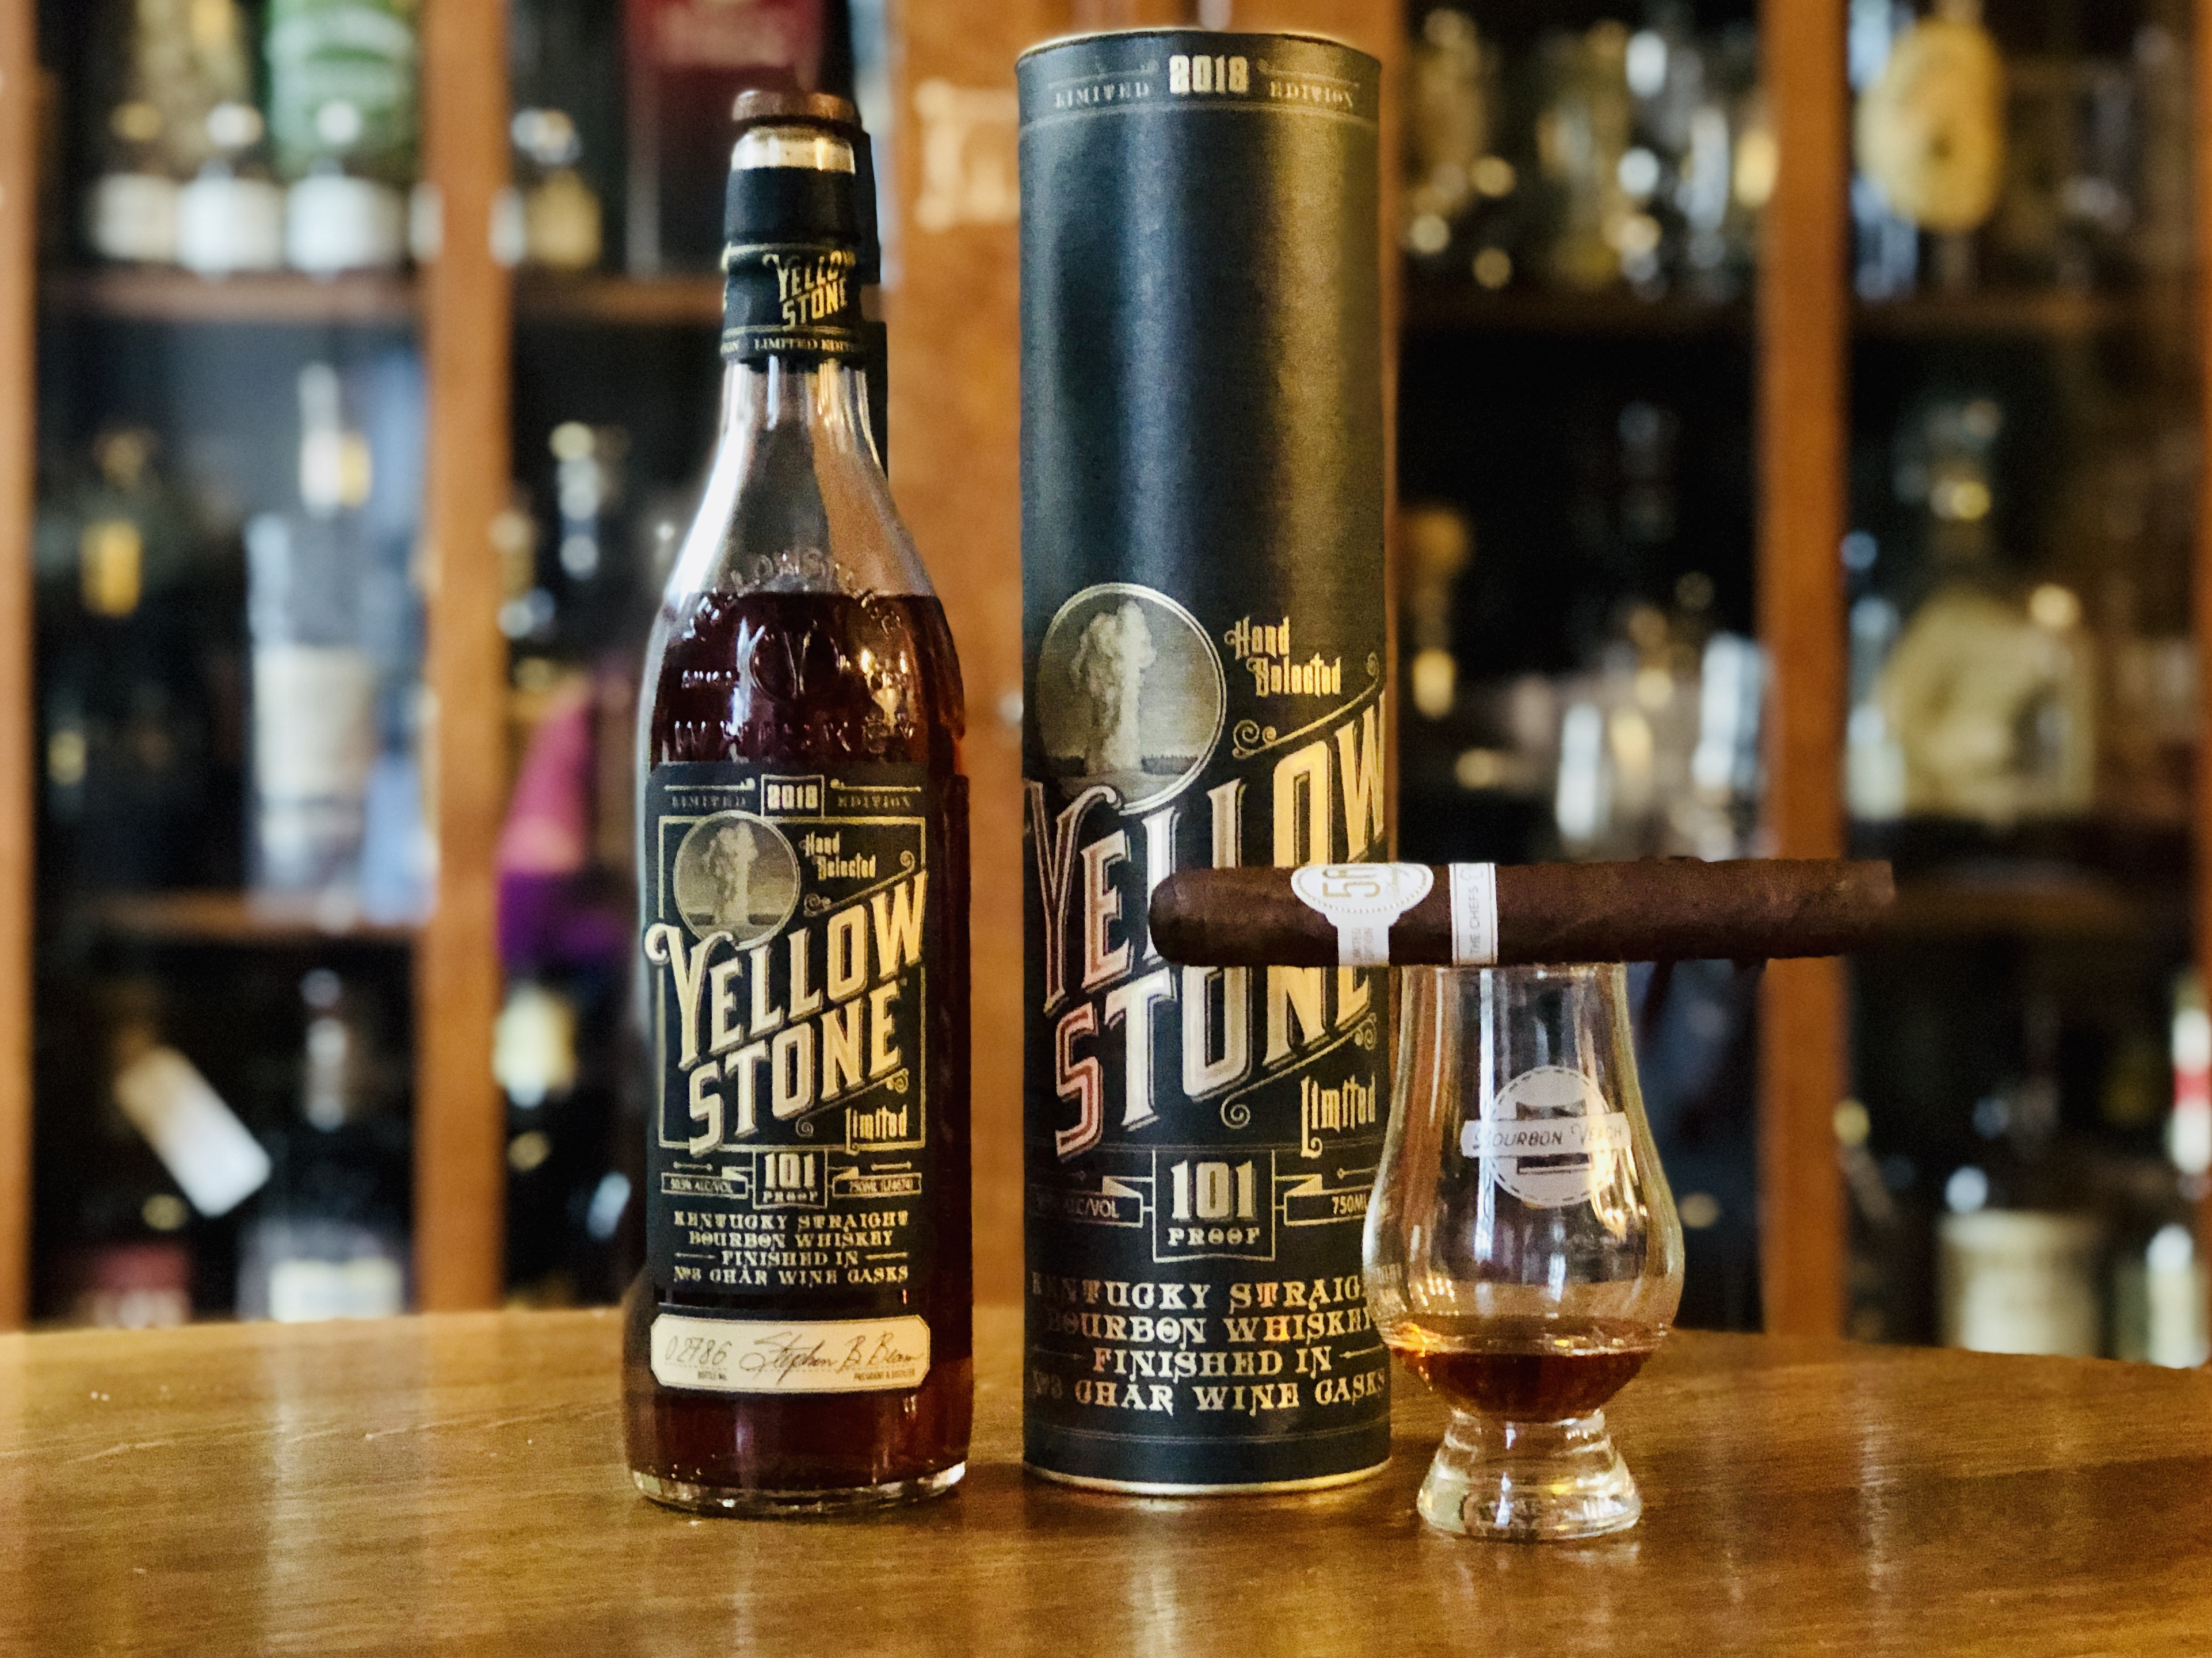 Tasting Notes: Yellowstone Limited Edition 2018